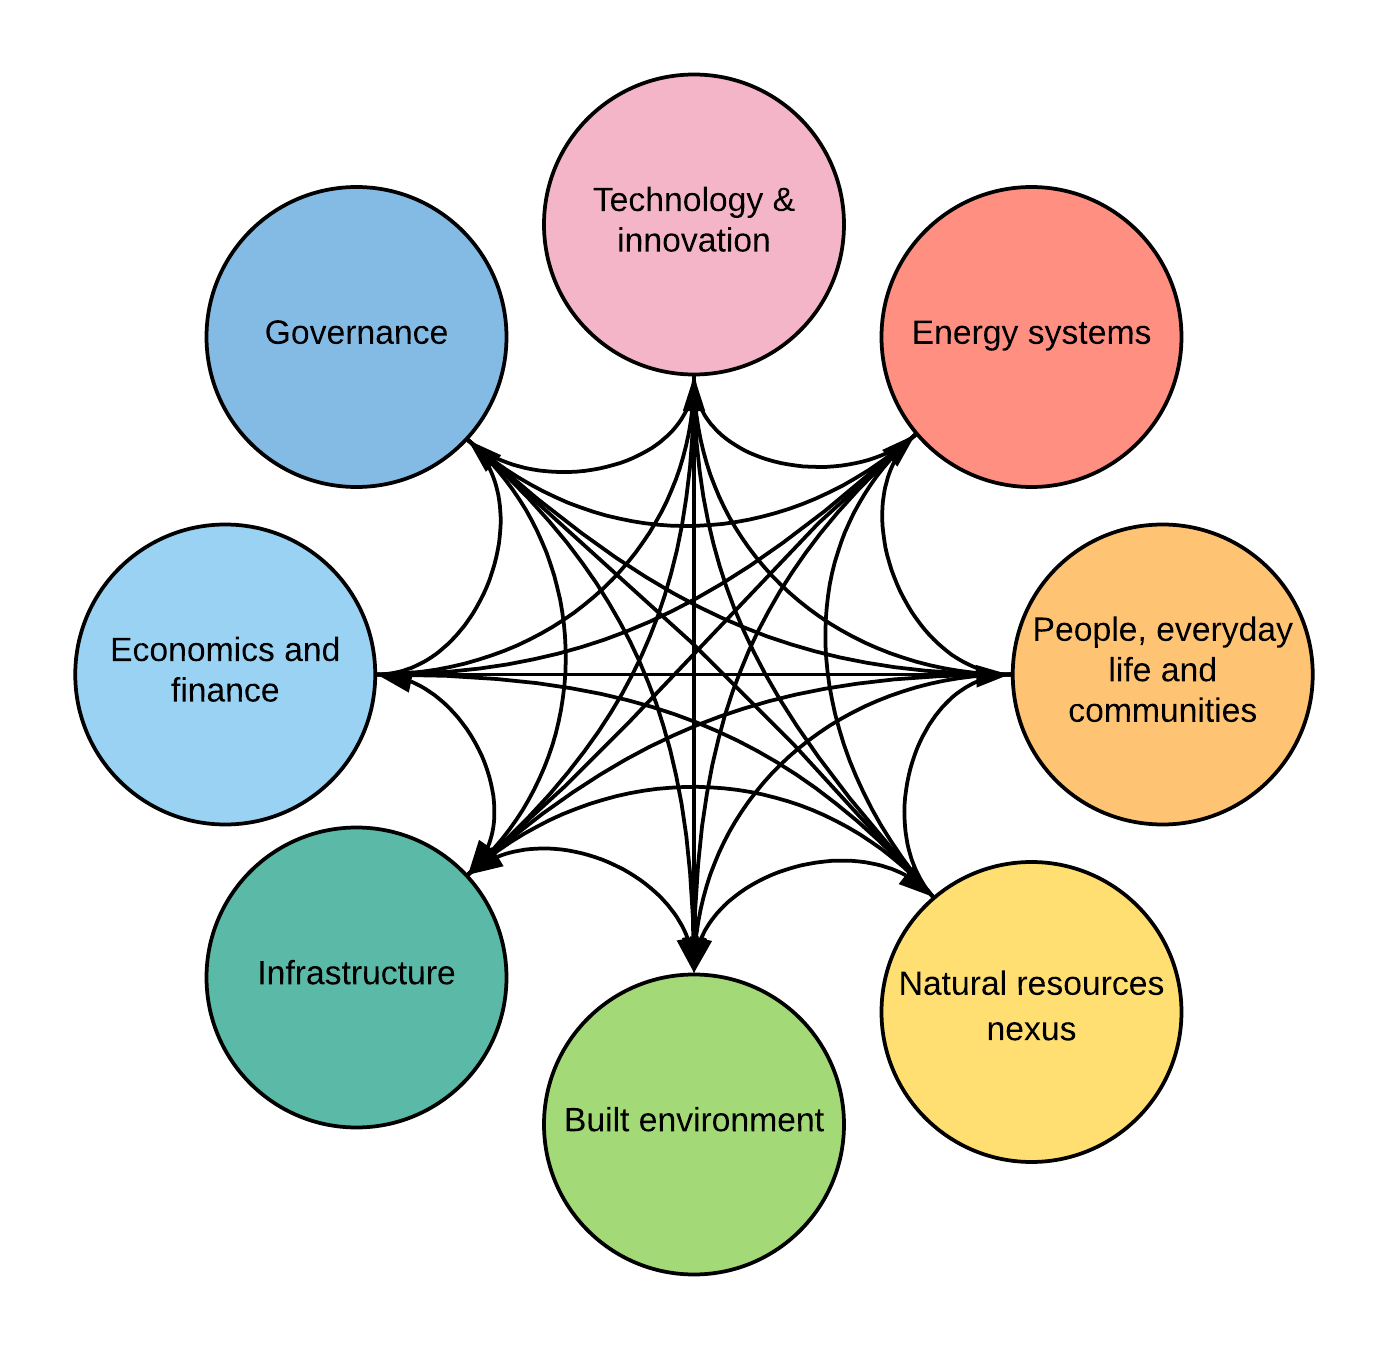 The UCL energy and development group focuses on 8 research themes:  governance; technology and innovation; energy systems; people, everyday life and communities; natural resources nexus; built environment; infrastructure and economics and finance